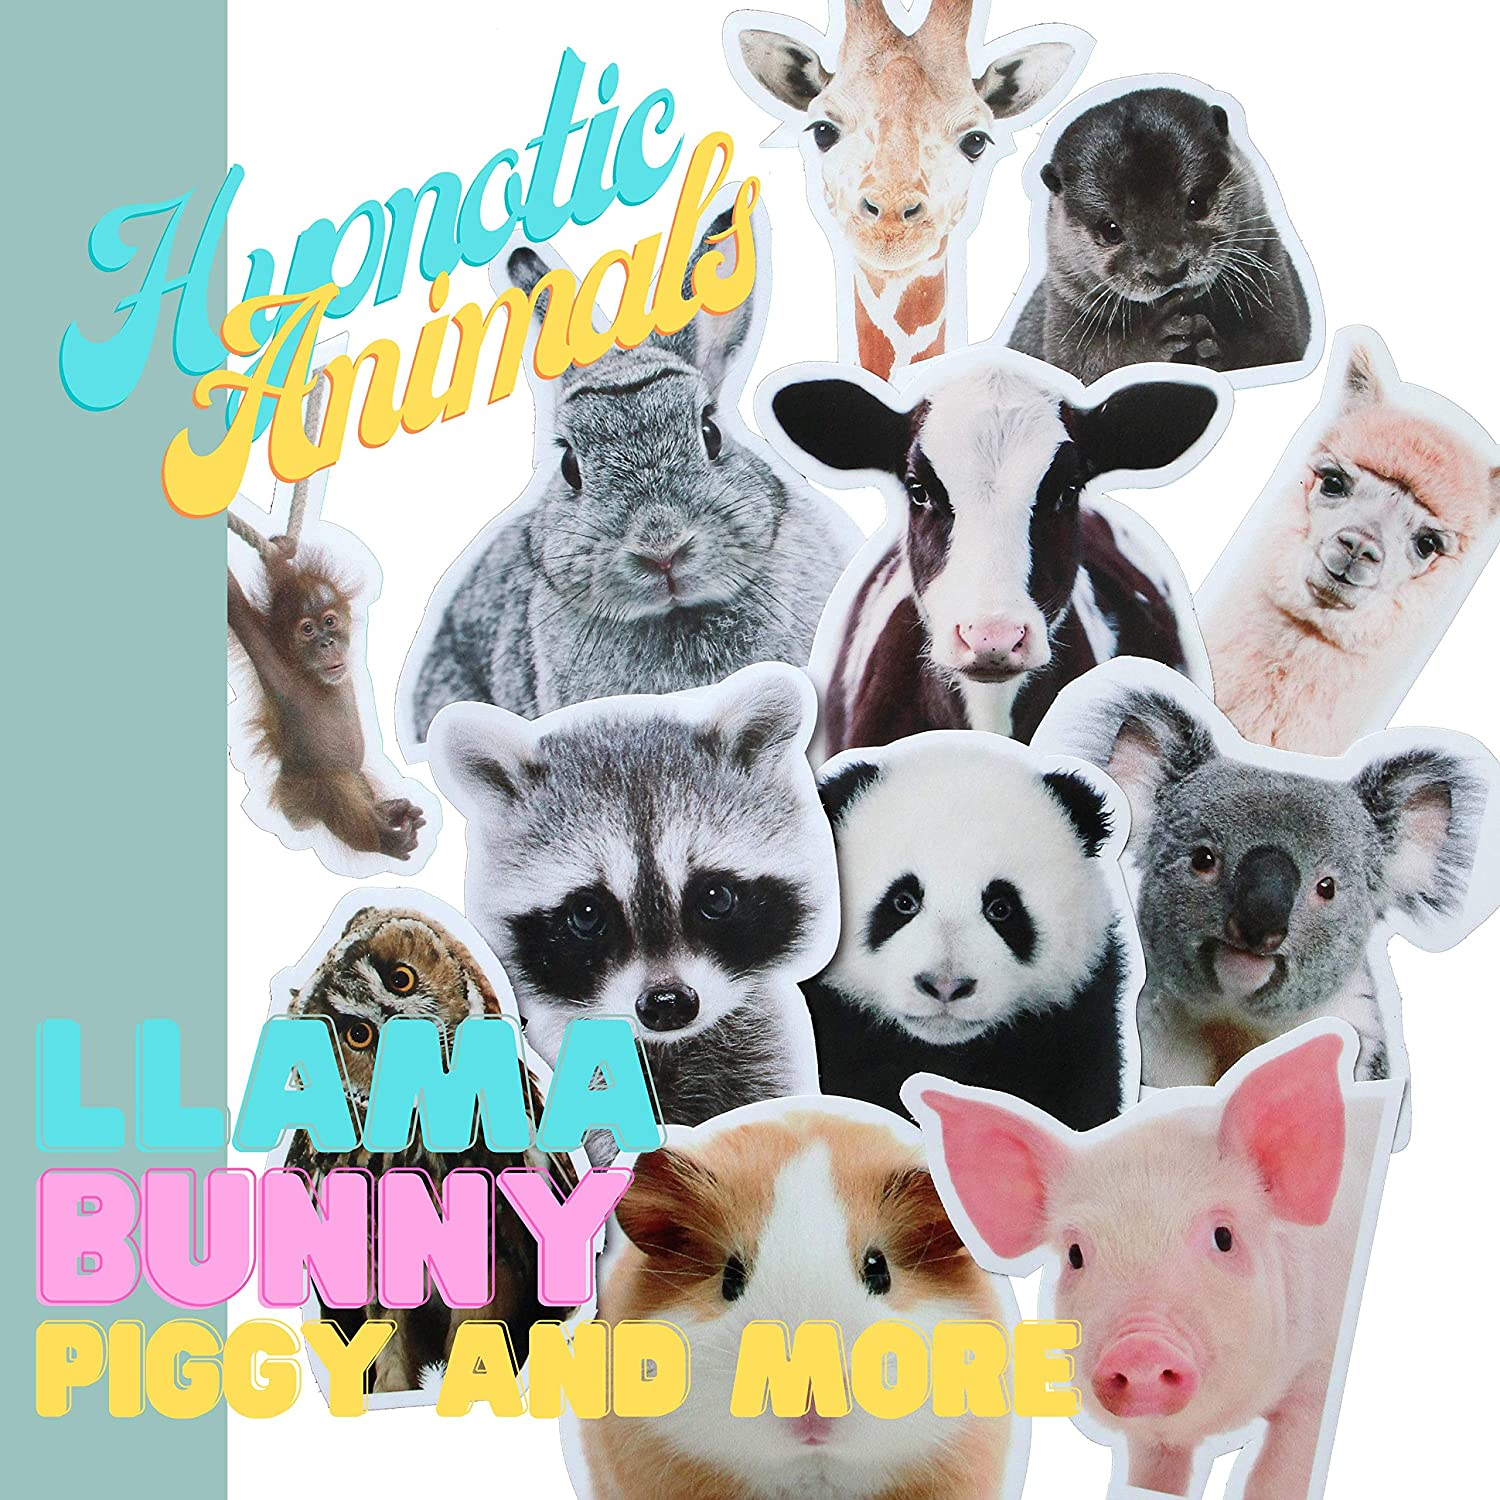 Animal Laptop Stickers - Waterproof, Large, Cute Decals - Laptop, Water Bottle, Skateboard - Animals Included: Panda Hamster Monkey Bunny Cow Otter Owl Pig Giraffe Llama Koala Raccoon